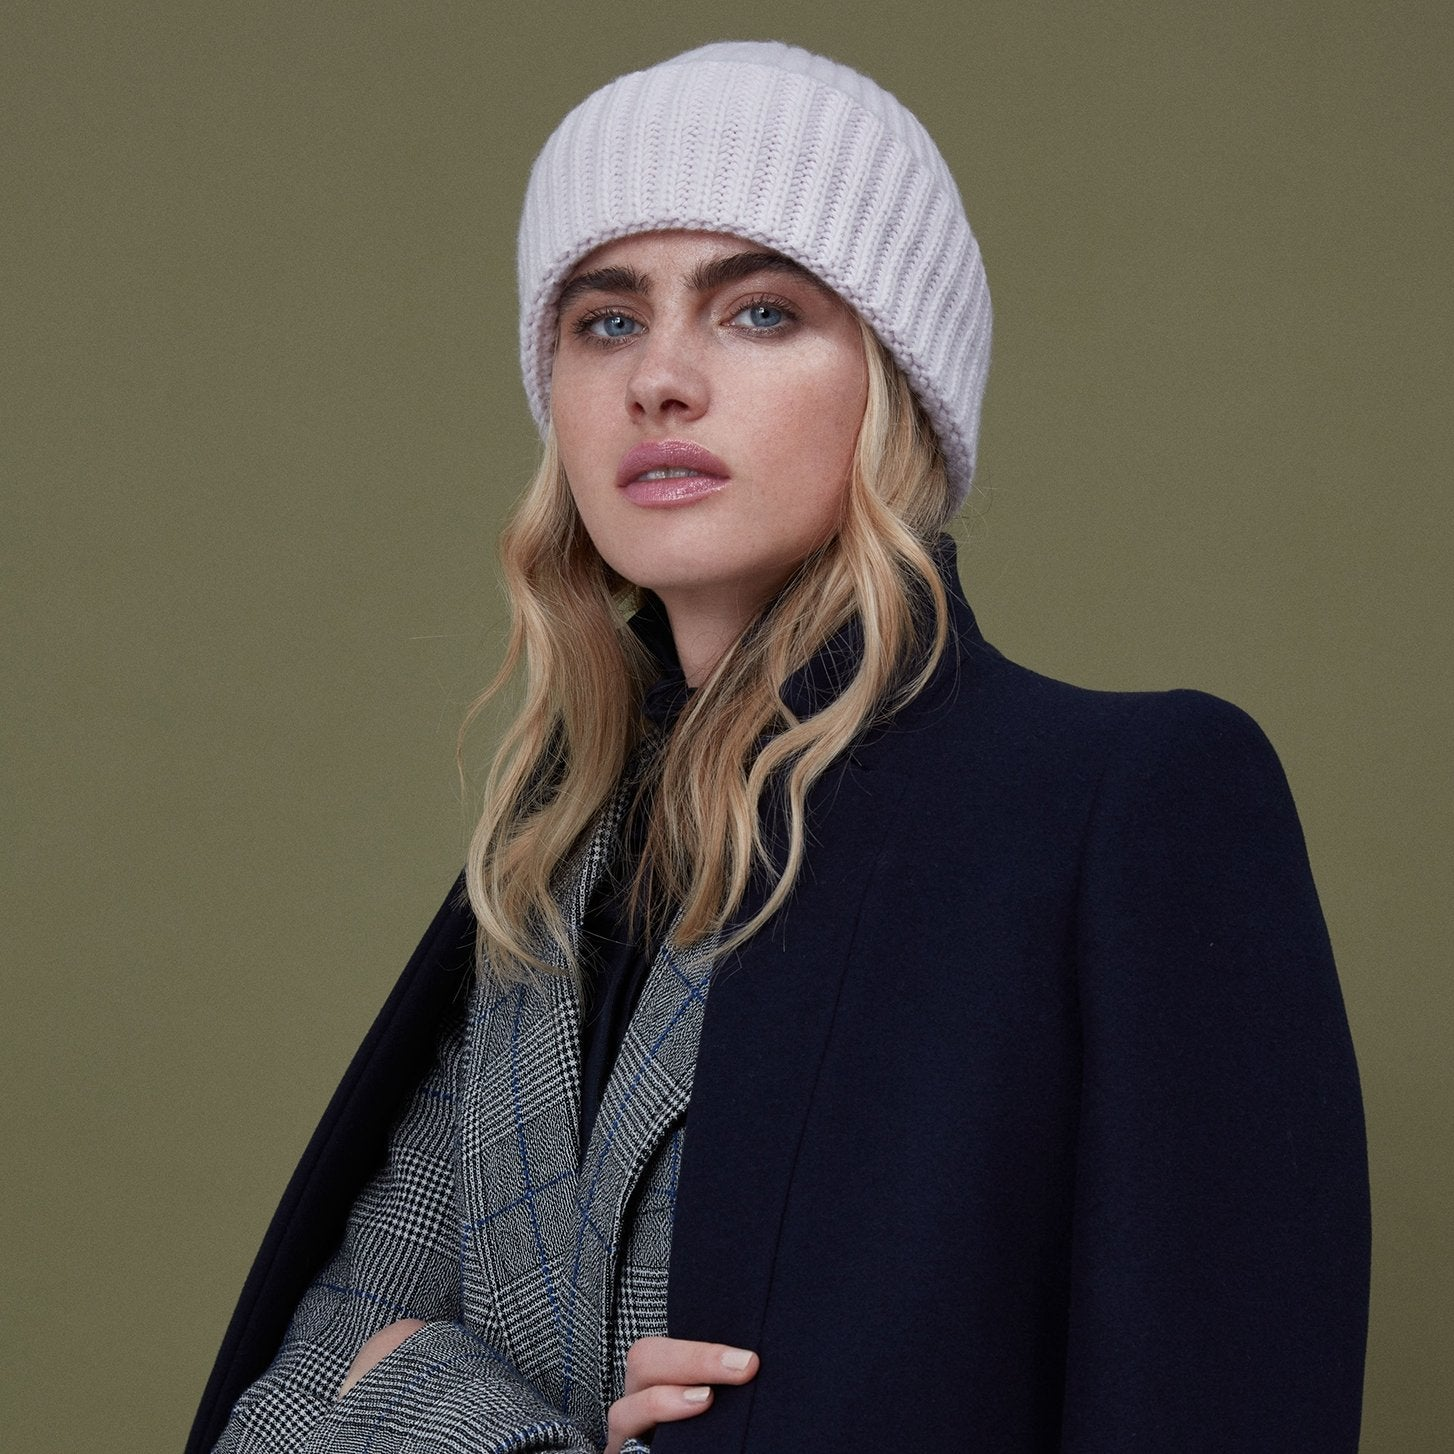 Glencoe cashmere beanie - Women's Beanies - Lock & Co. Hatters London UK